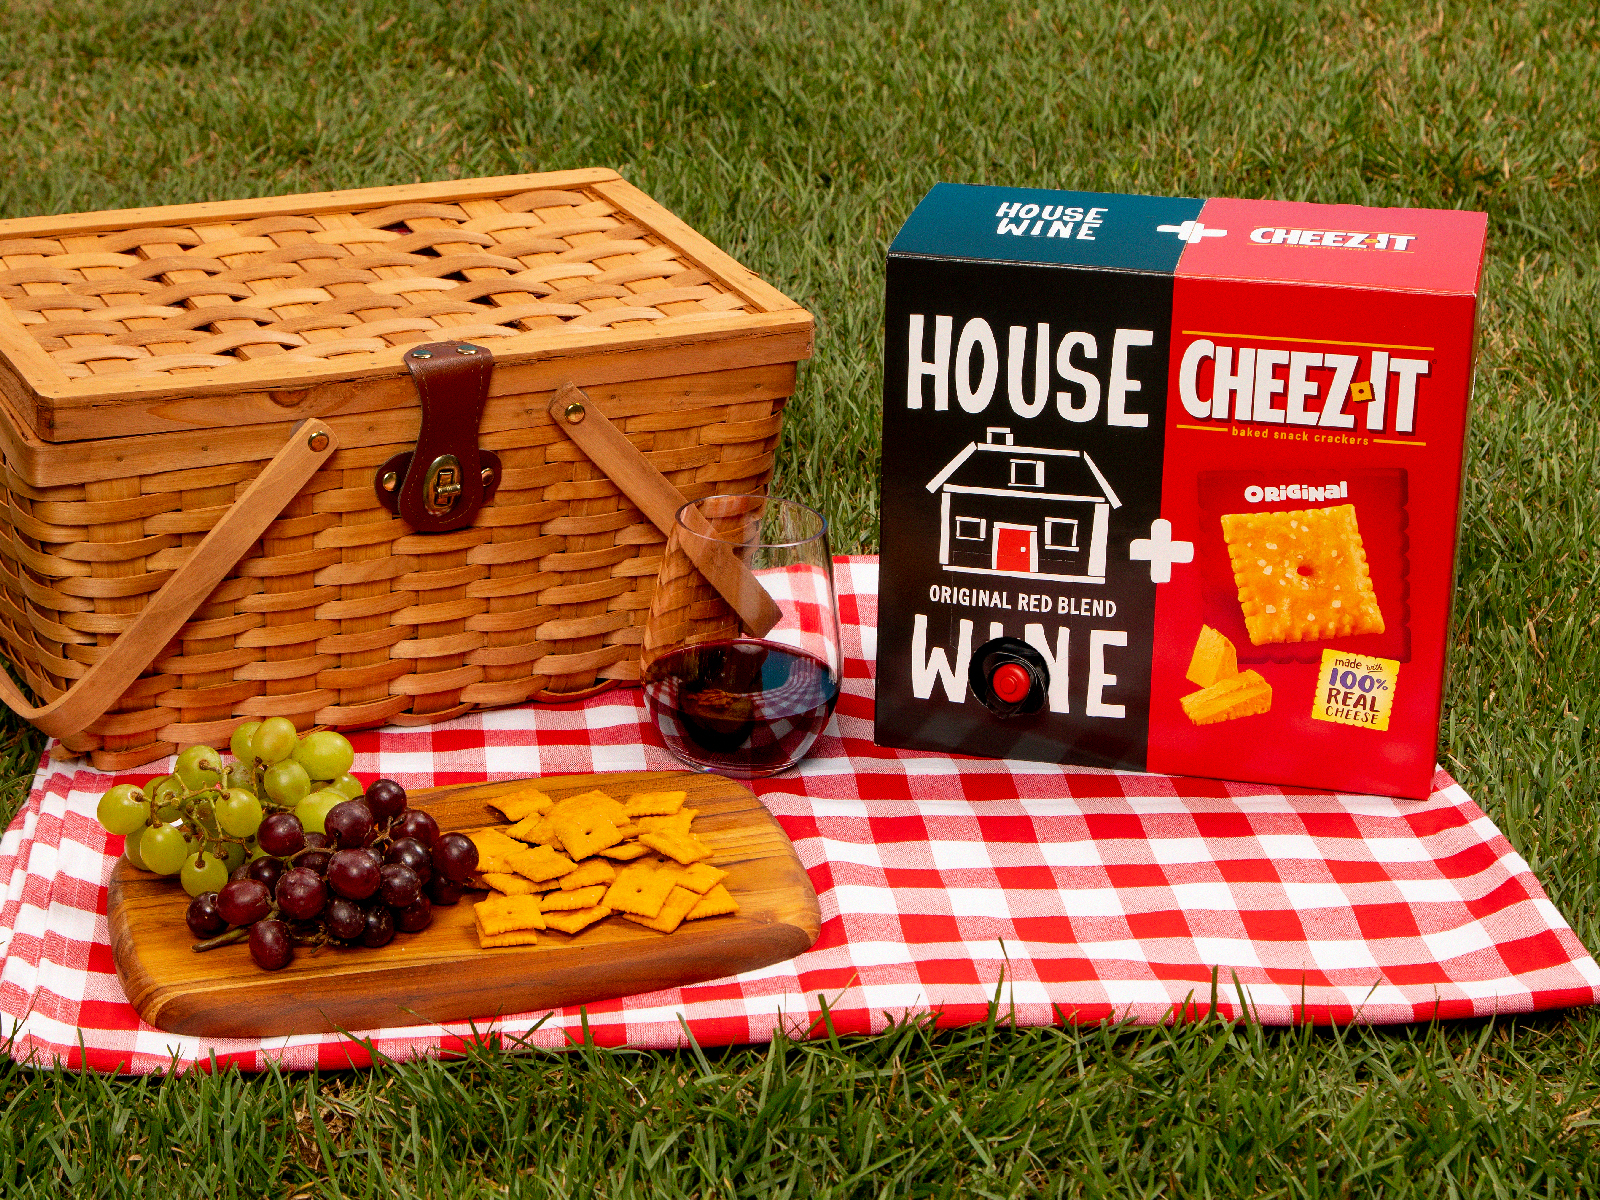 These 'Wine & Cheez-It' Pairings Include Crackers and Booze in a Single Box